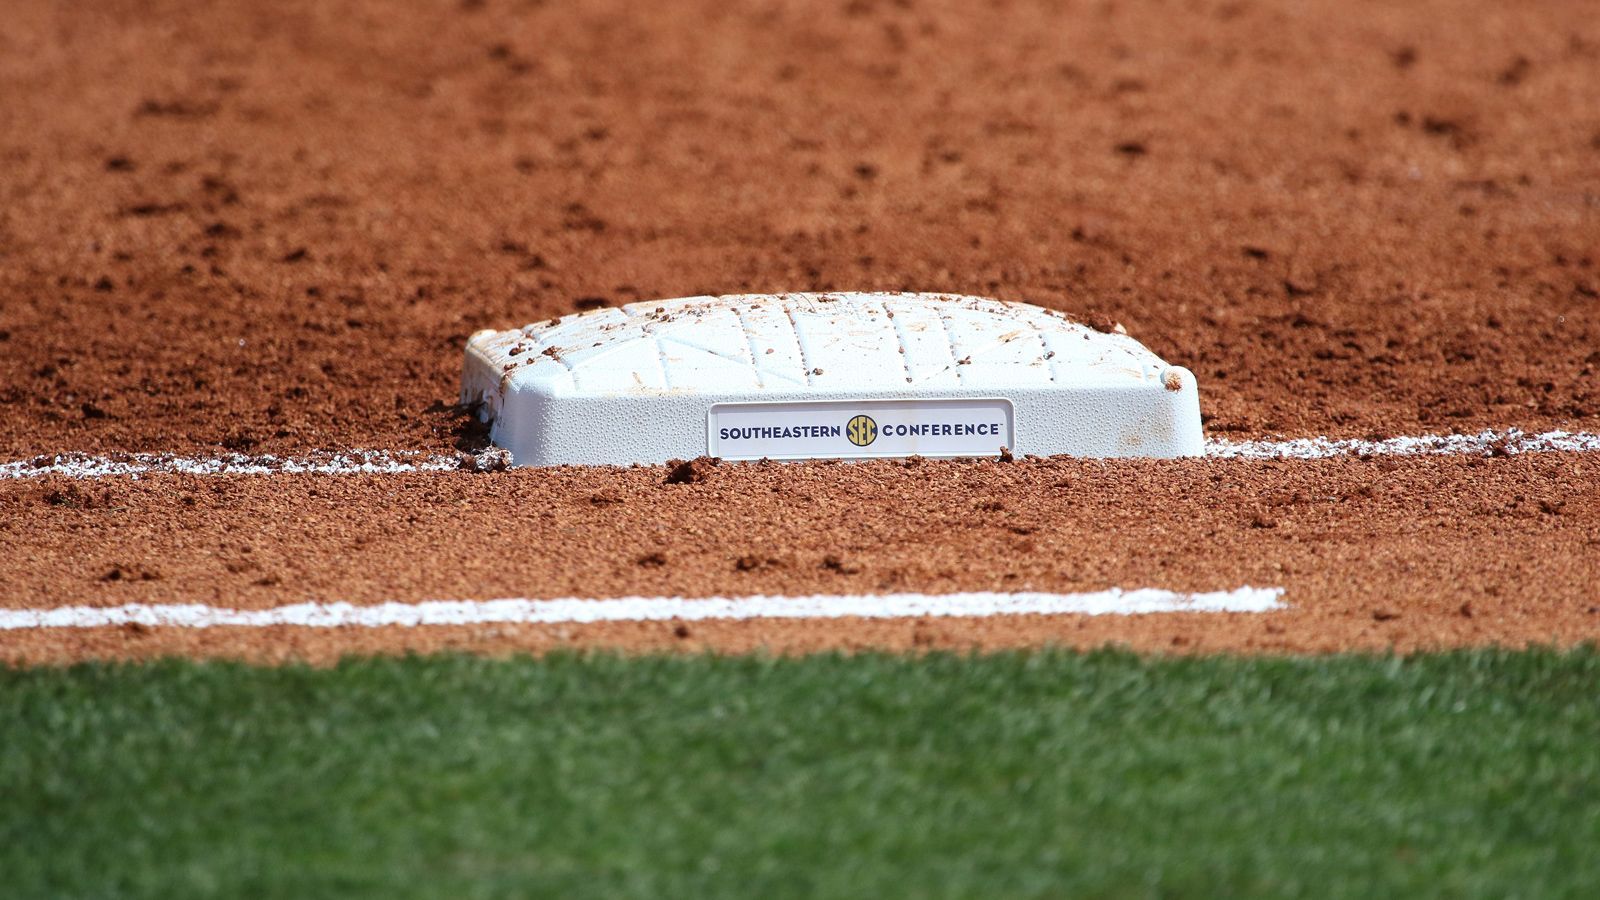 SEC Baseball Tournament Blog: Monday